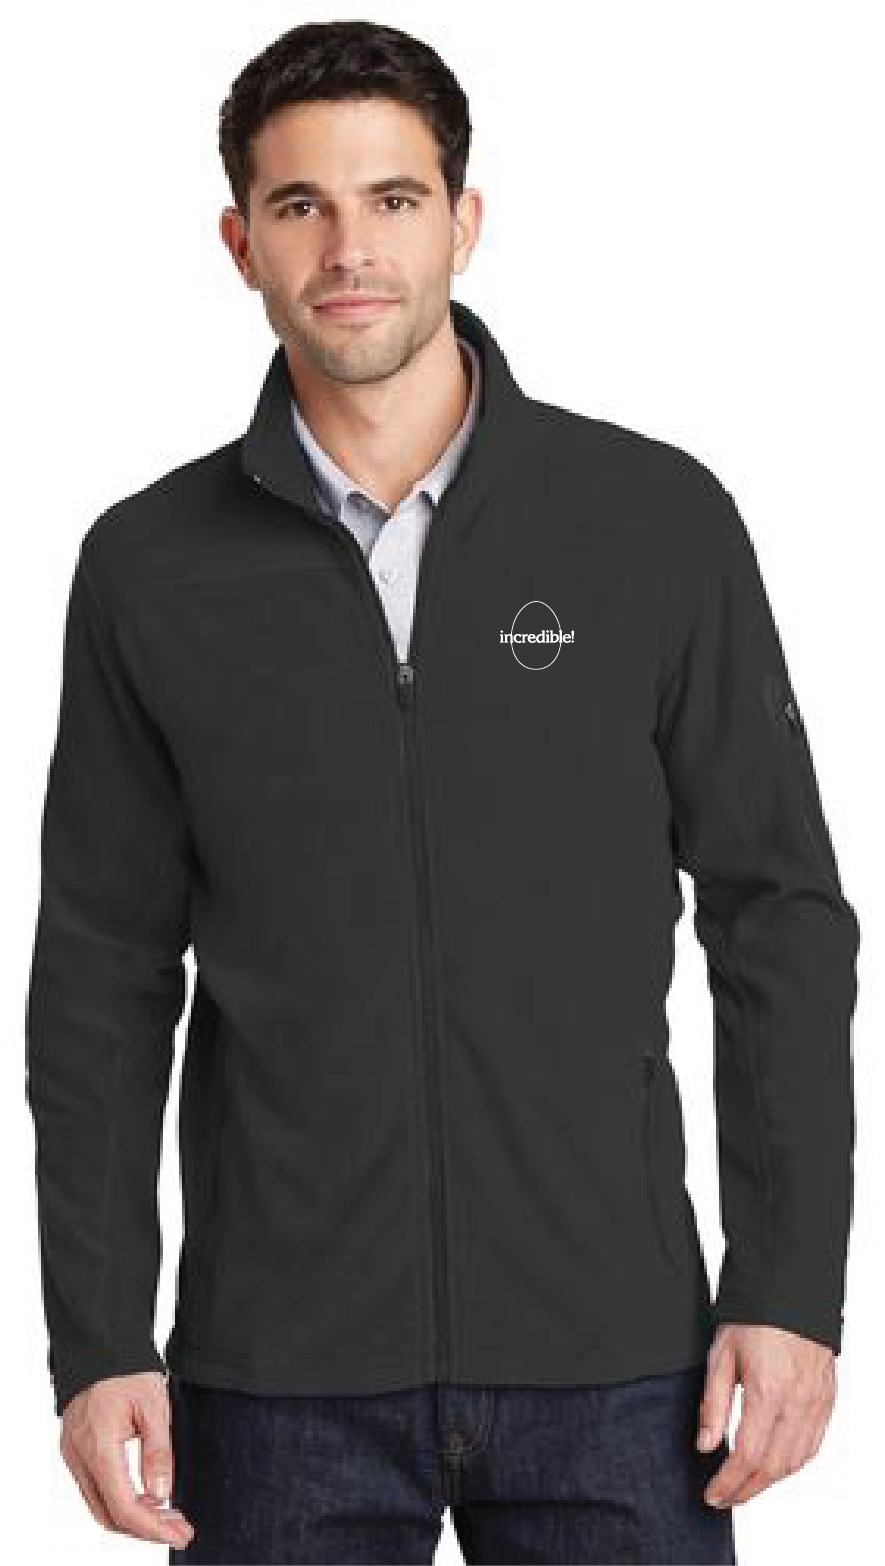 Men's Full-Zip Fleece Jacket (Black)